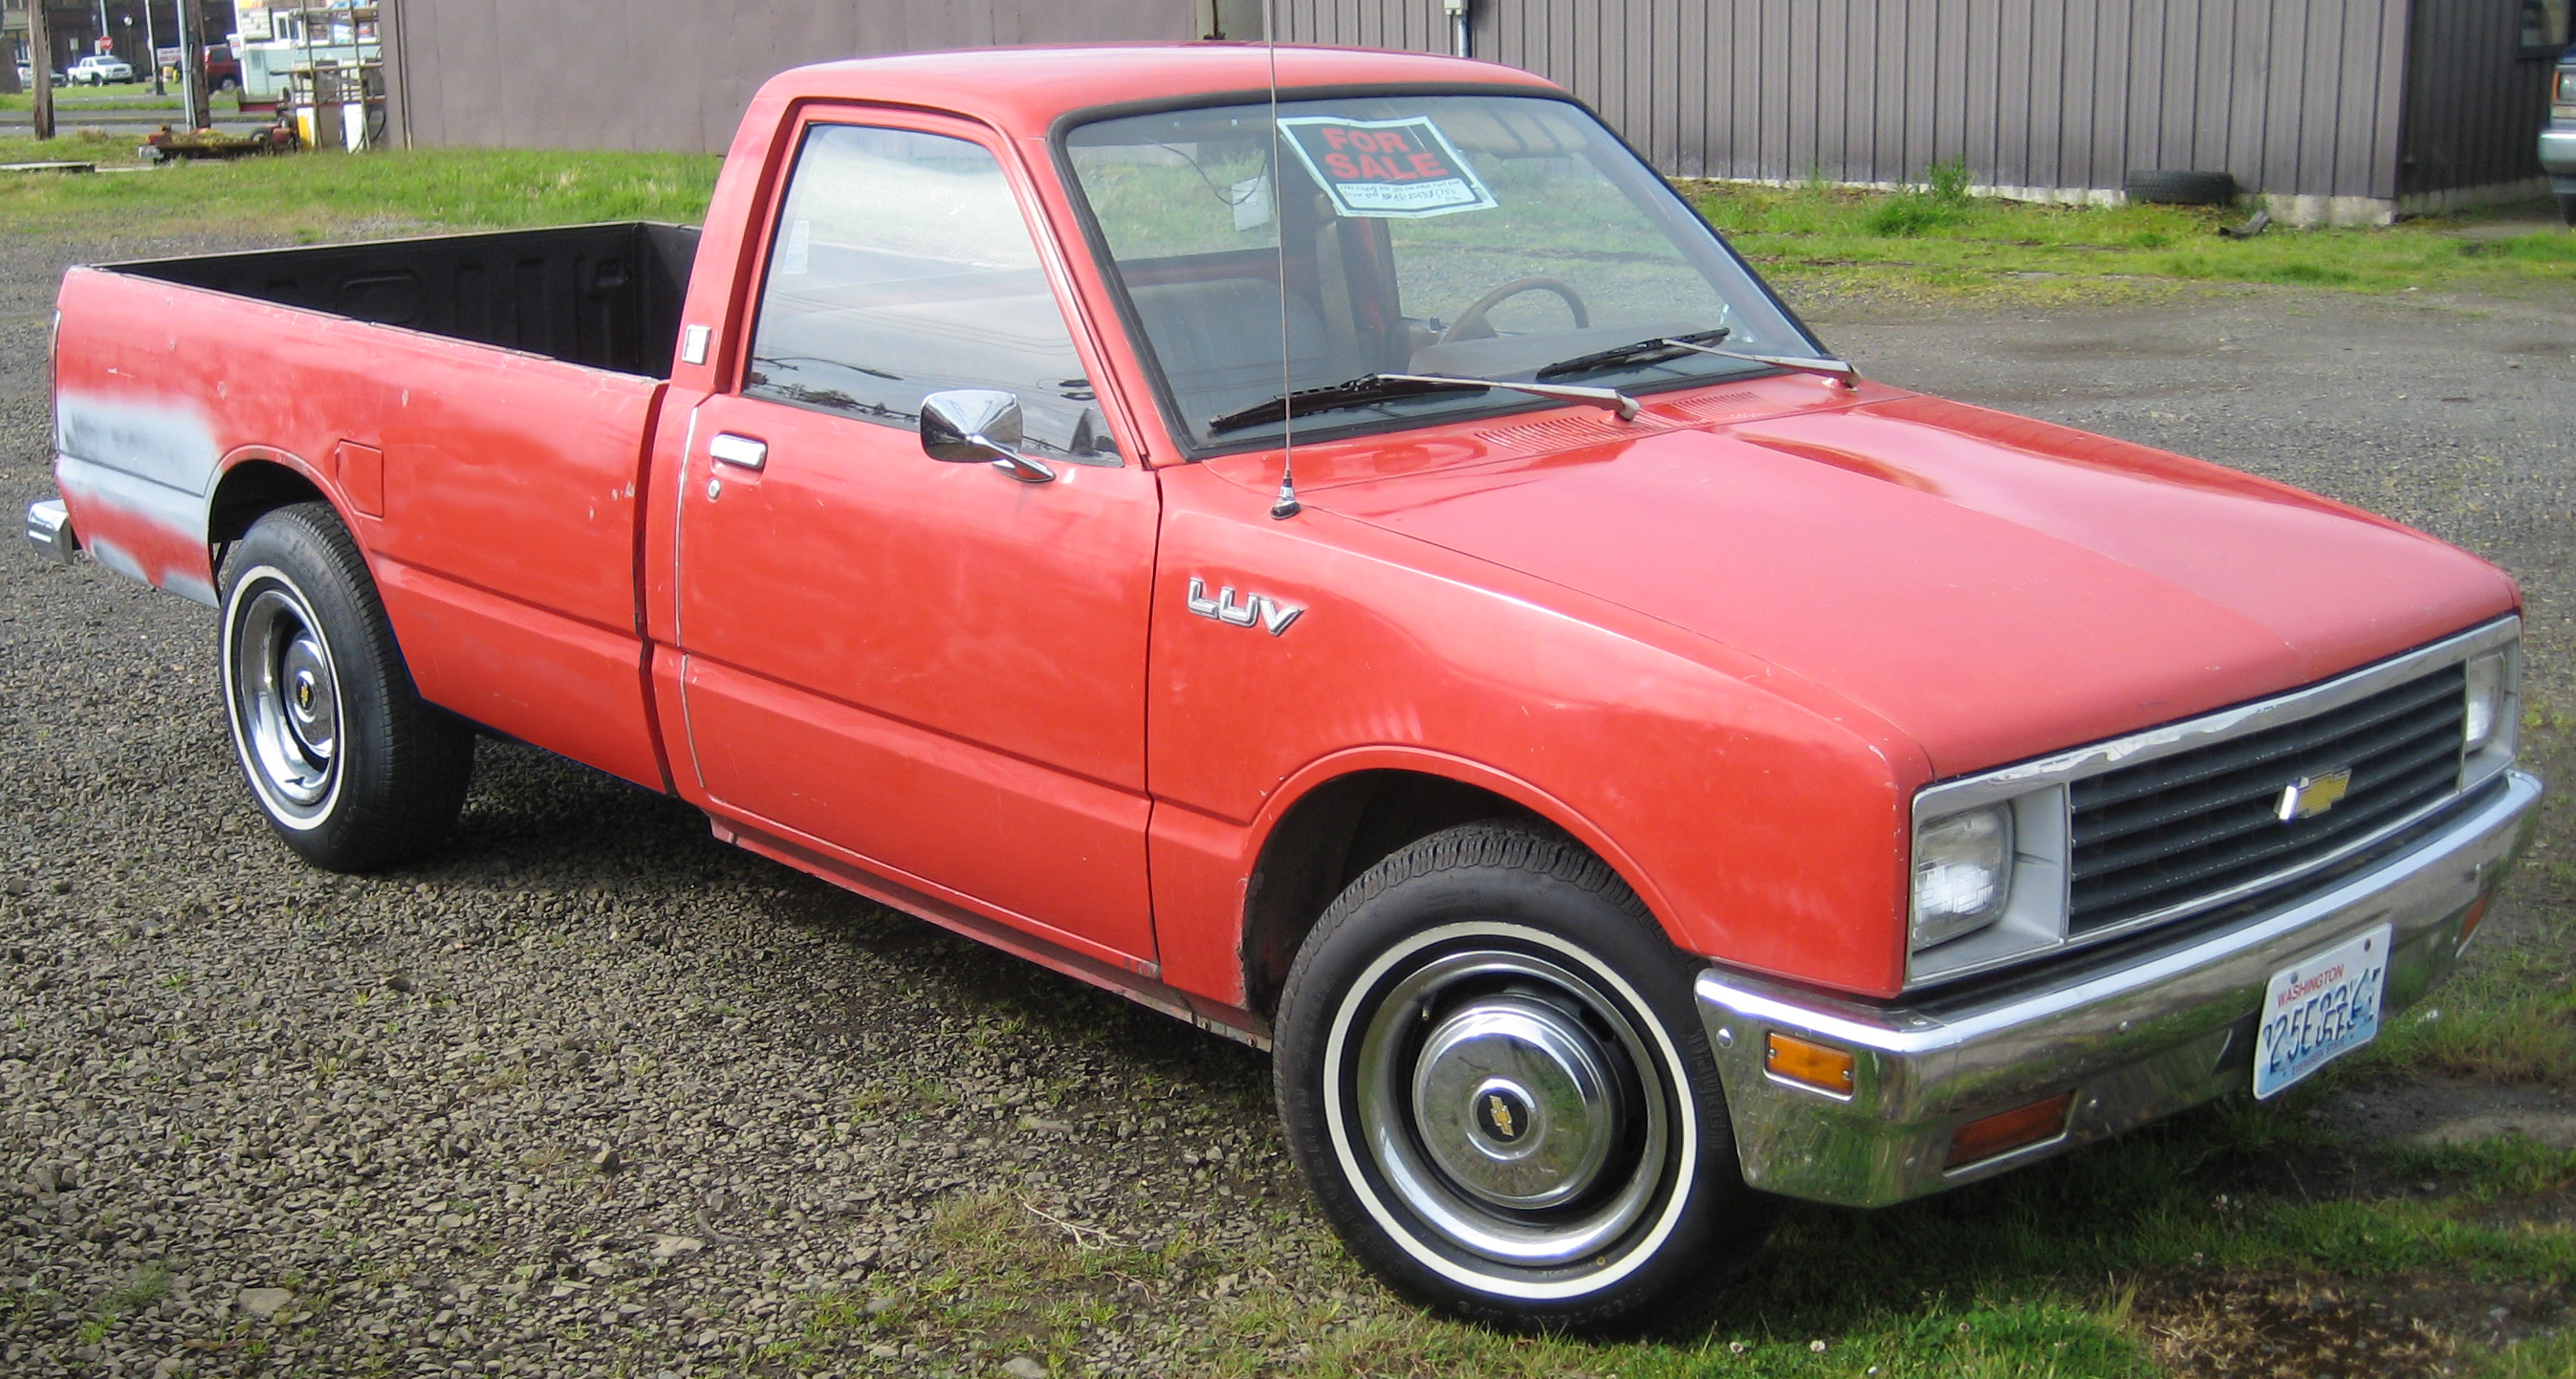 1982 Chevy Luv Mikado 4 X 4 For Sale | Autos Post